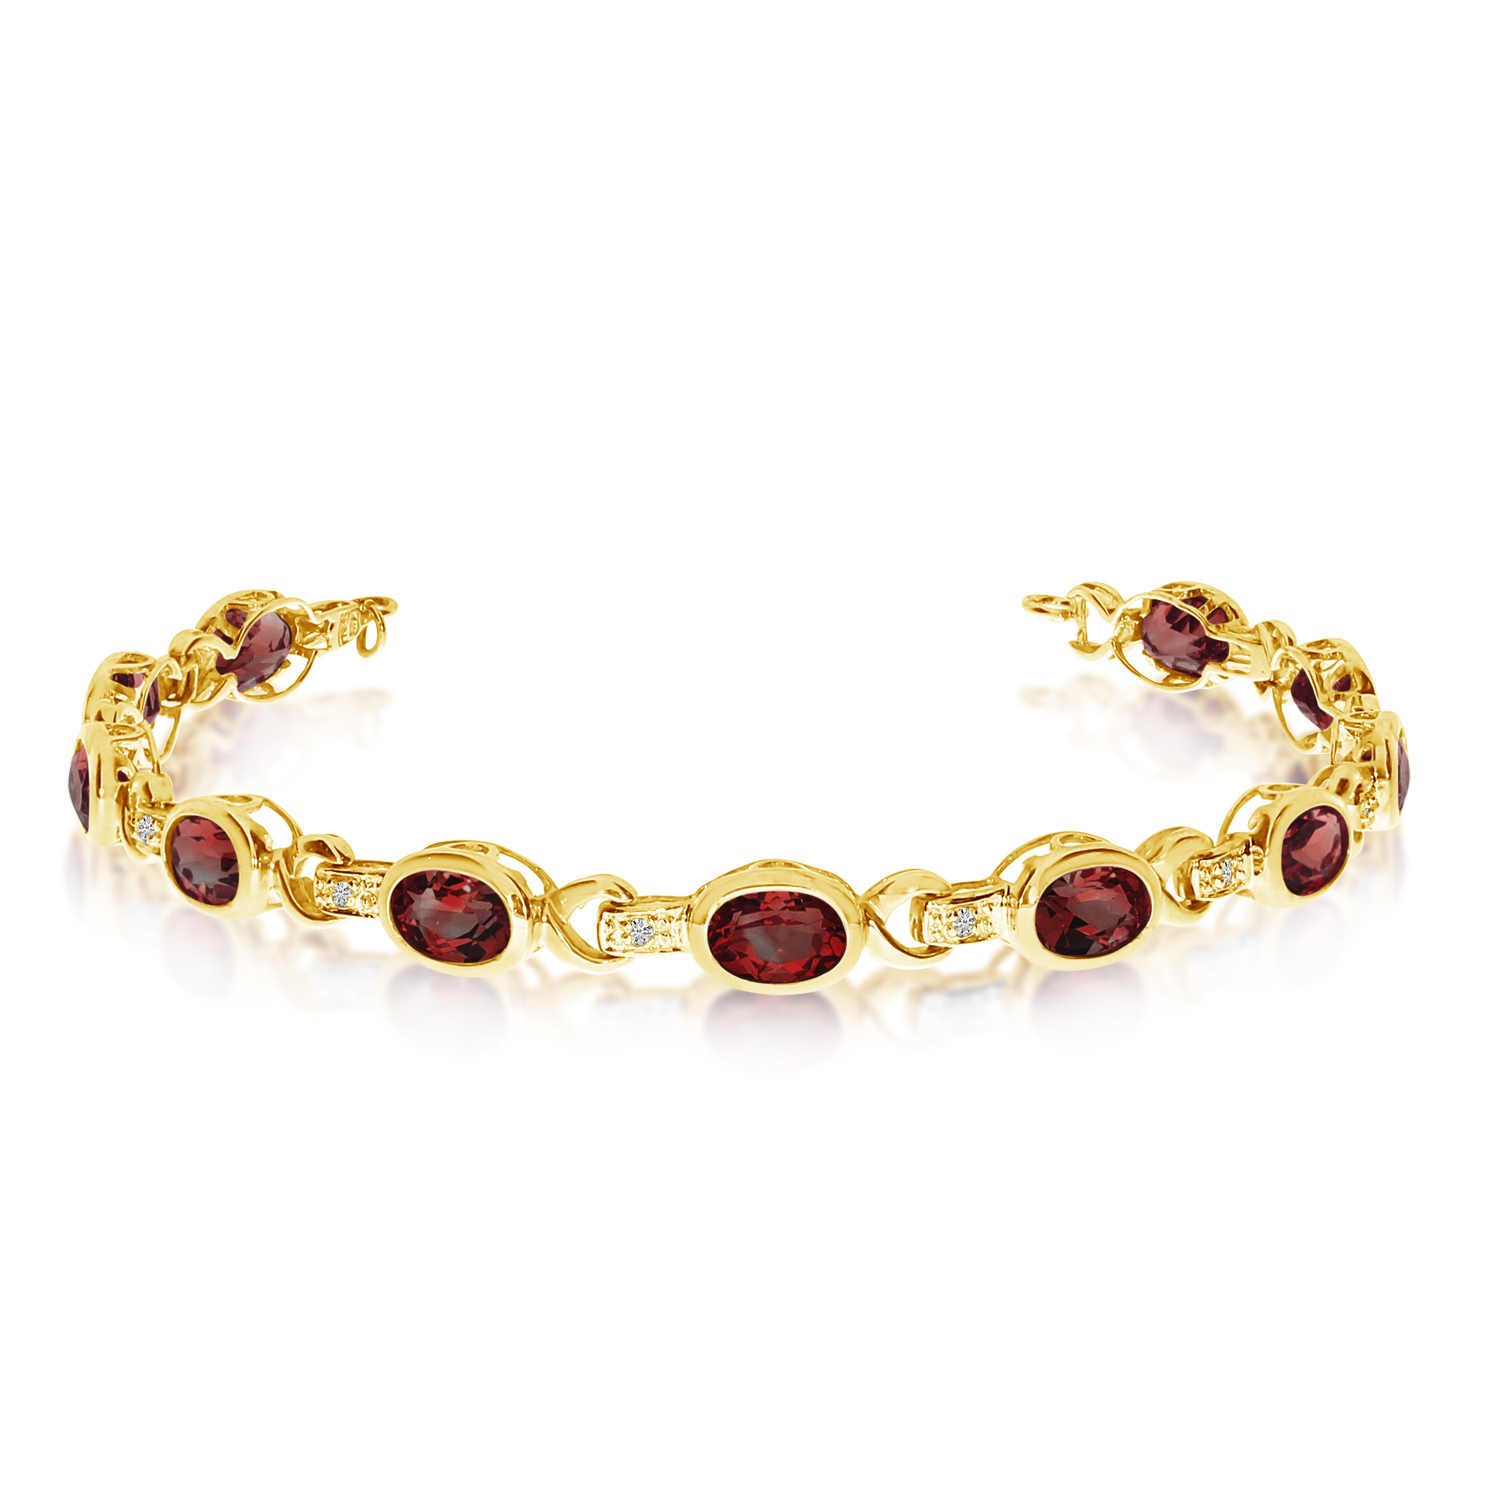 Oval Garnet & Diamond Link Bracelet 14k Yellow Gold (9.62ctw)